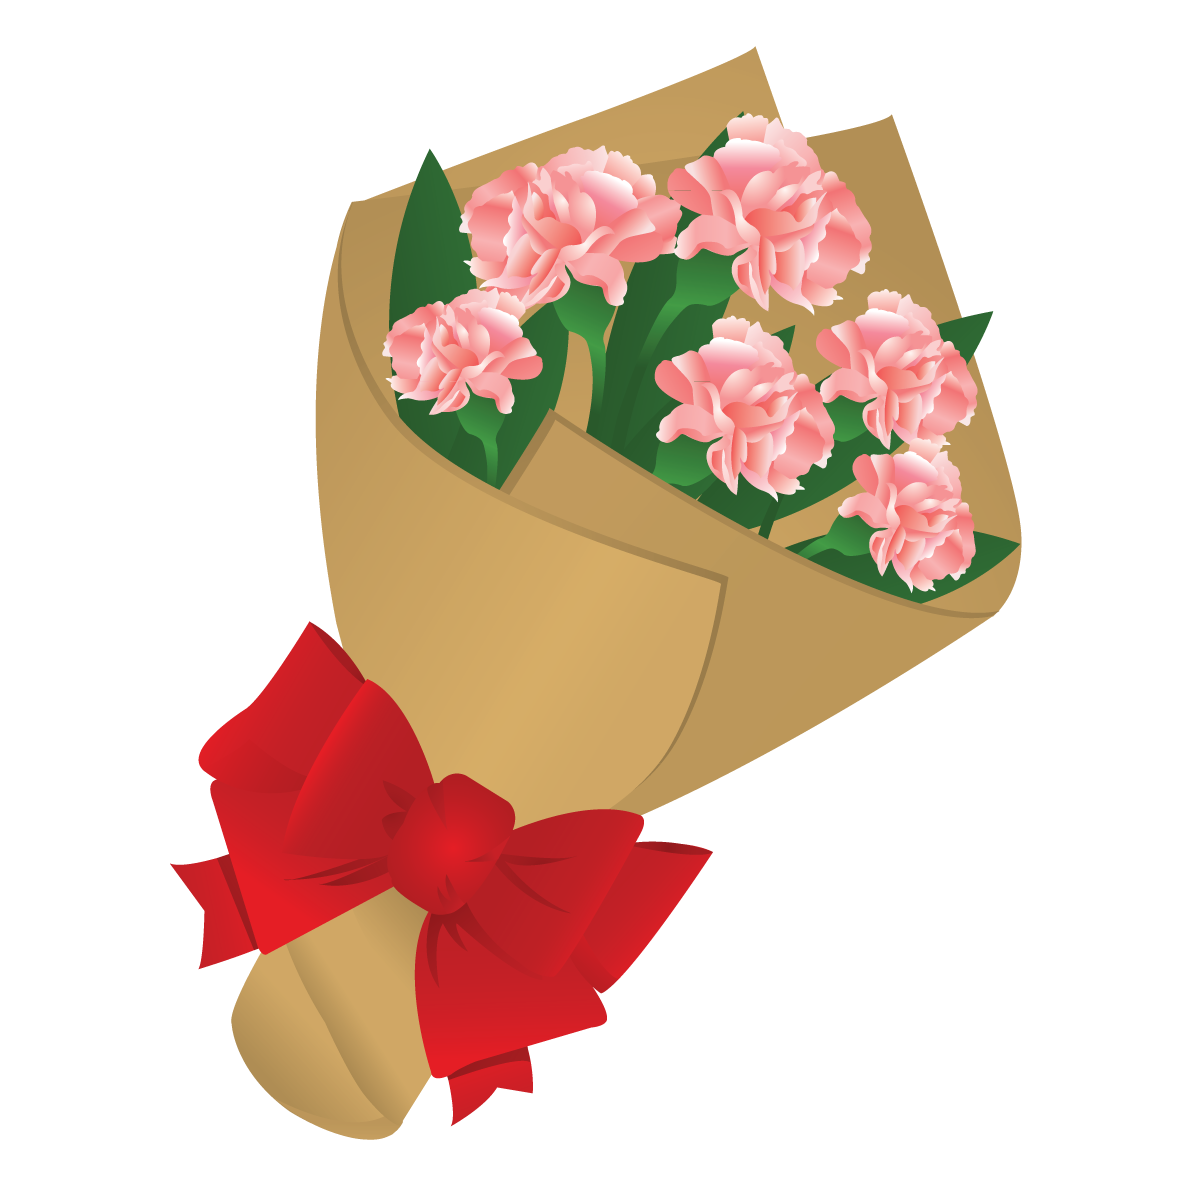 Clipart roses valentines. Free valentine bouquet cliparts